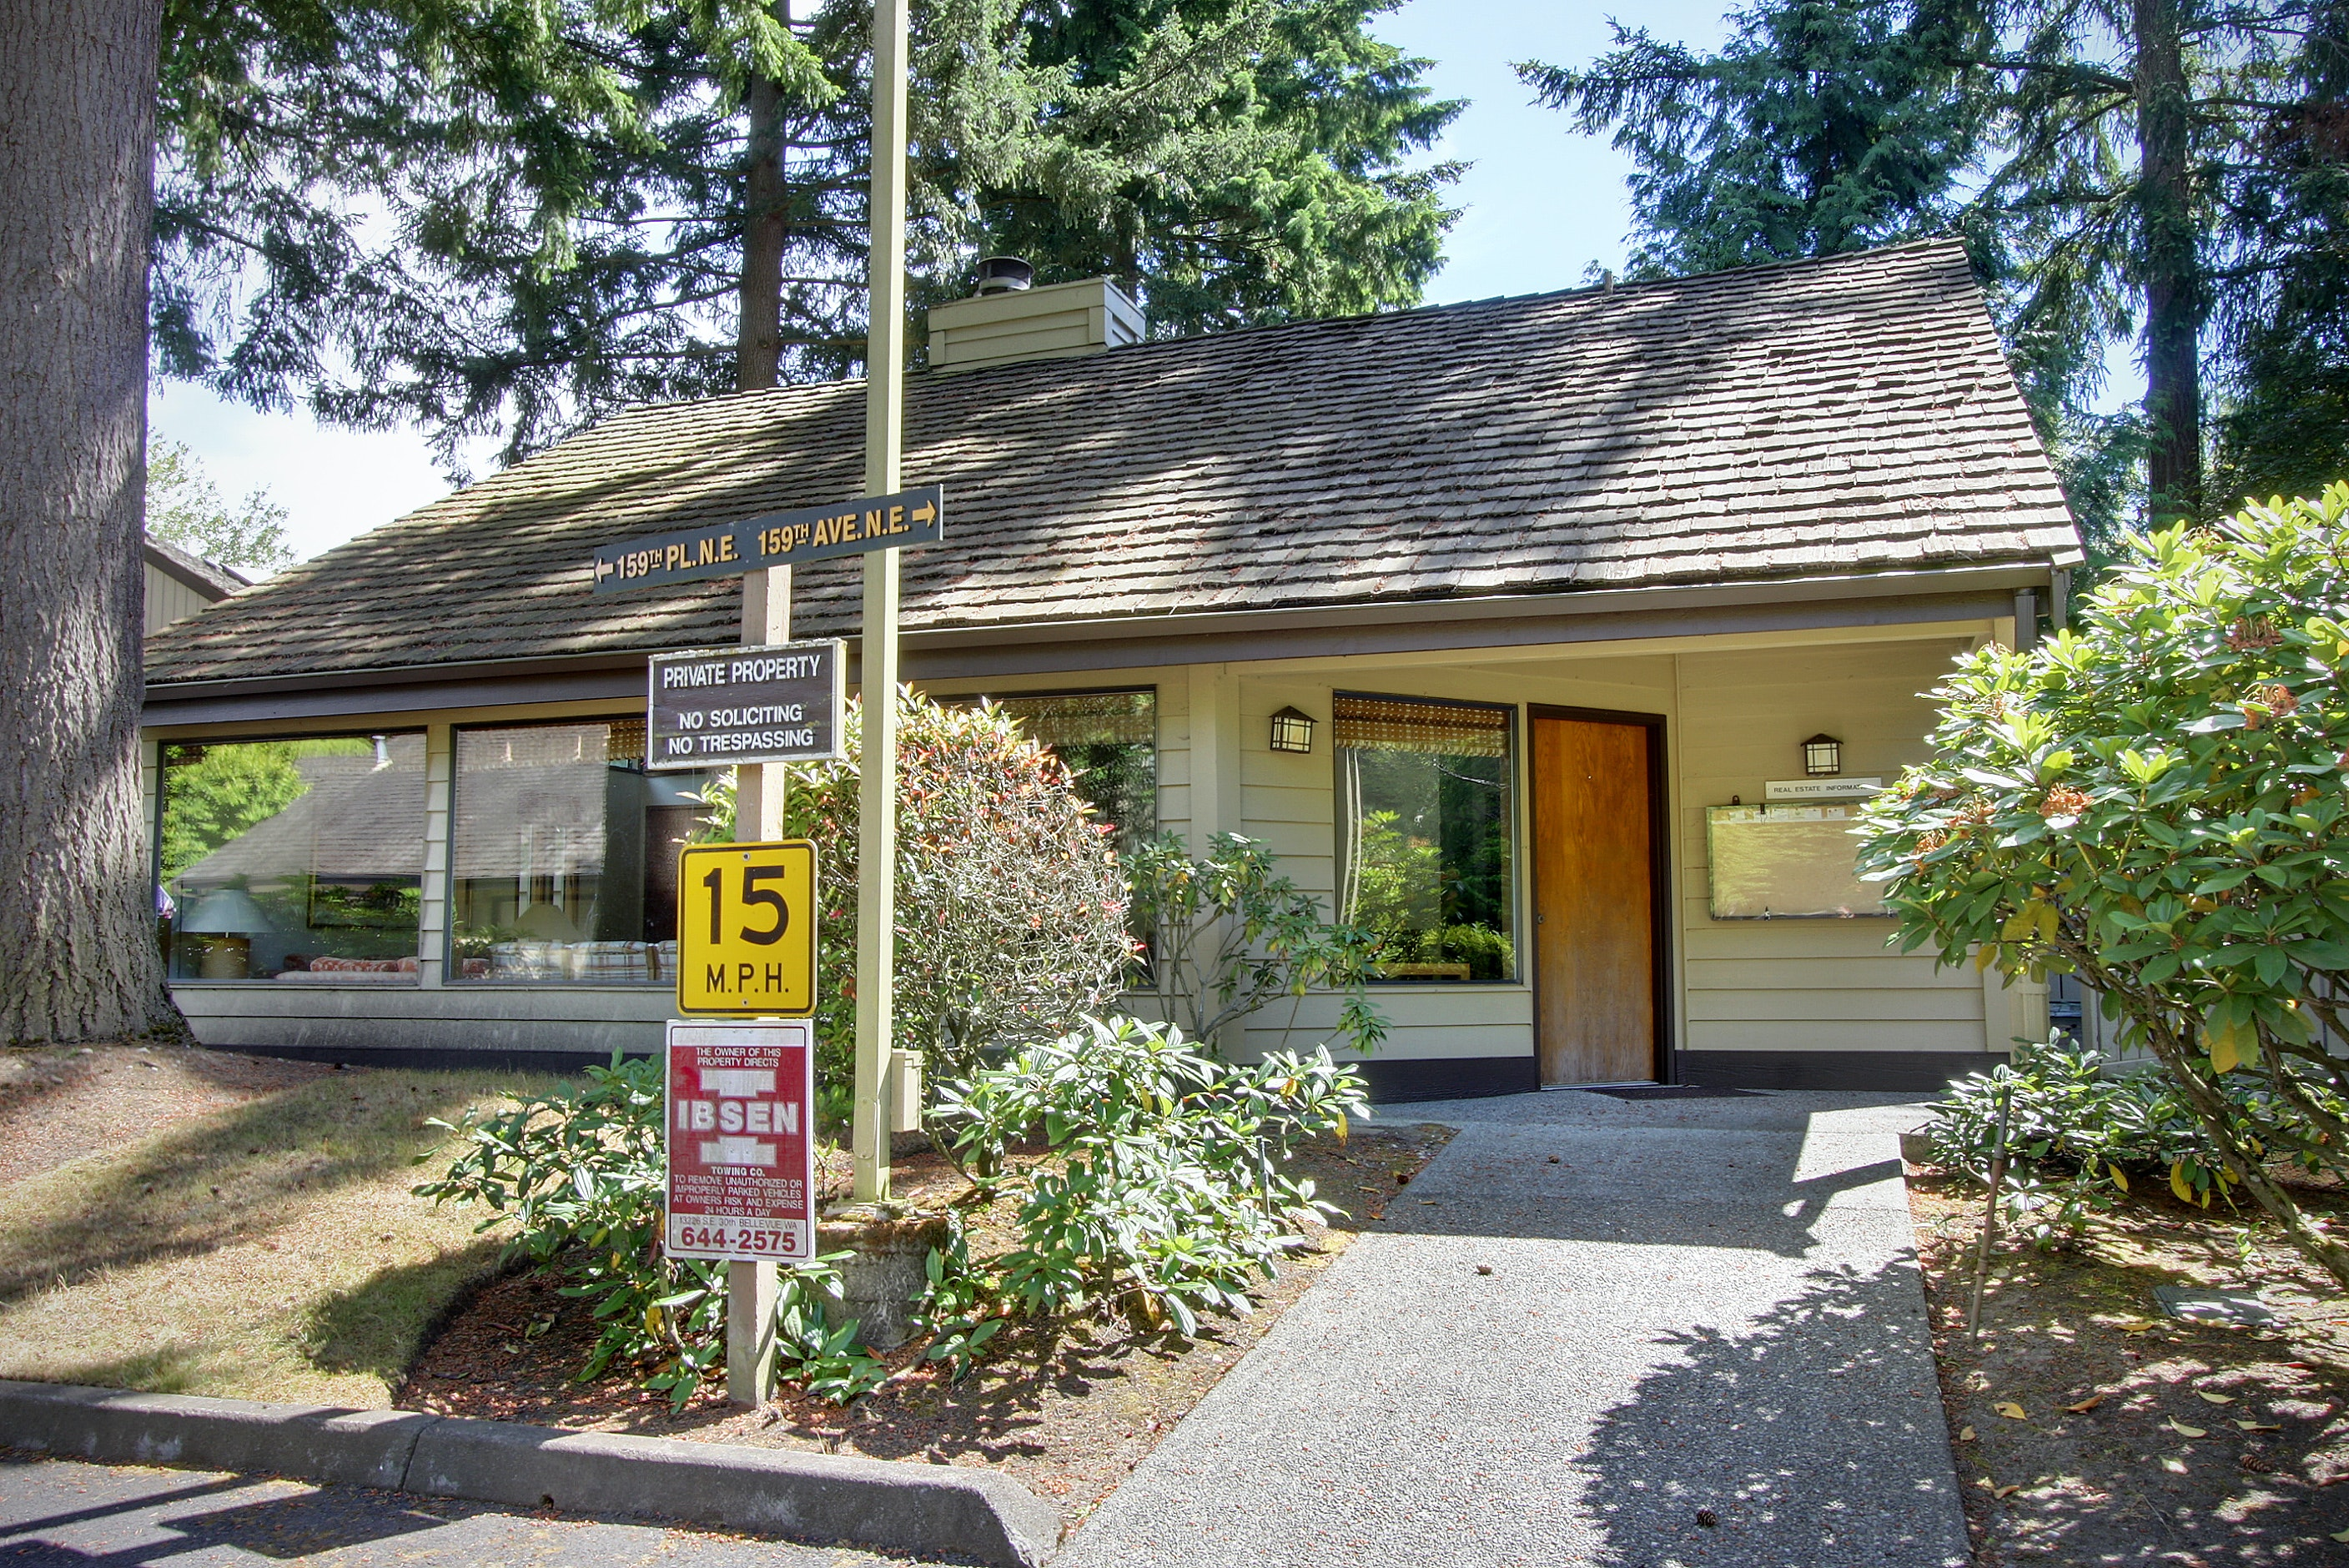 4+ Bedroom Home In North Bend, WA